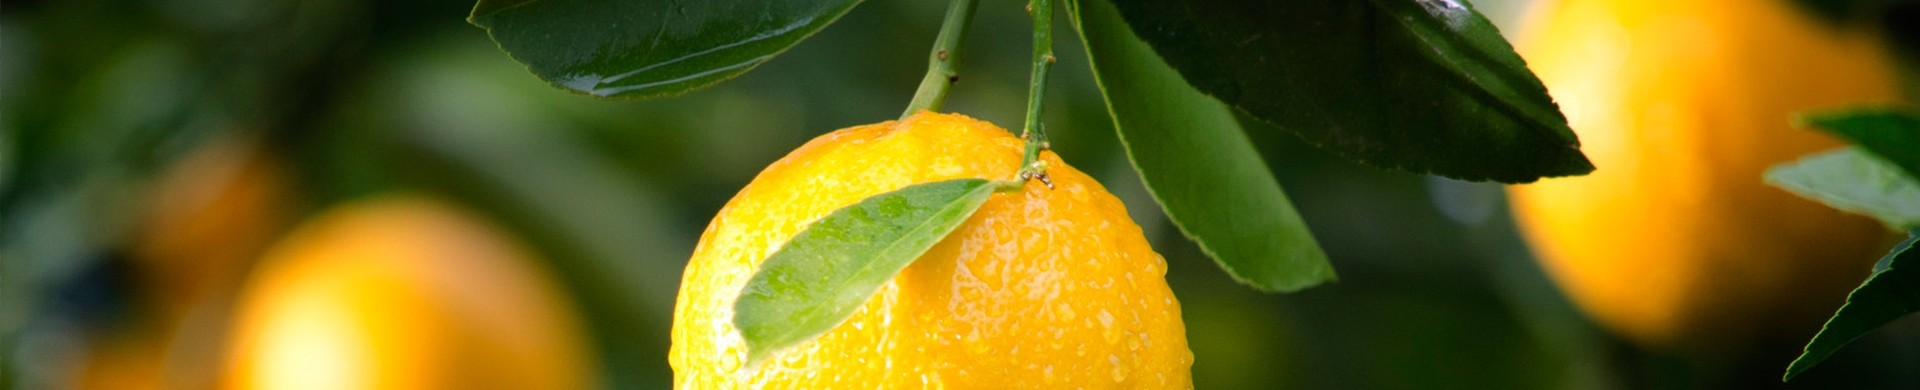 Buy orange and lemon trees - Sale of orange and lemon trees